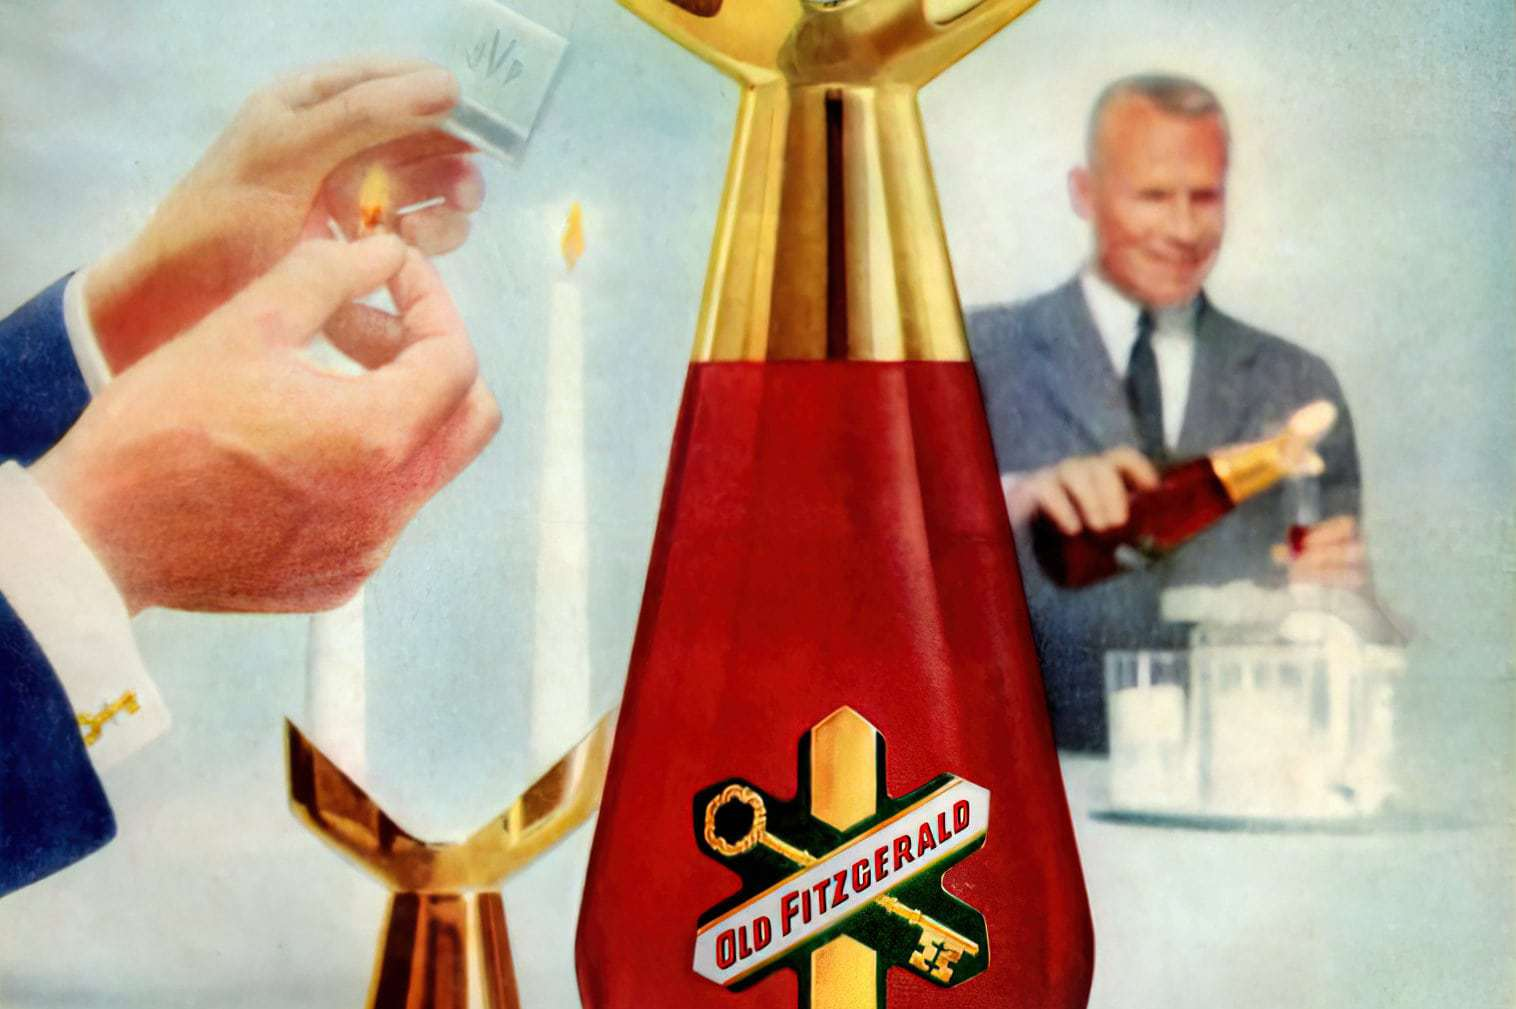 Old Fitzgerald Candlelight decanters (1955-1956)